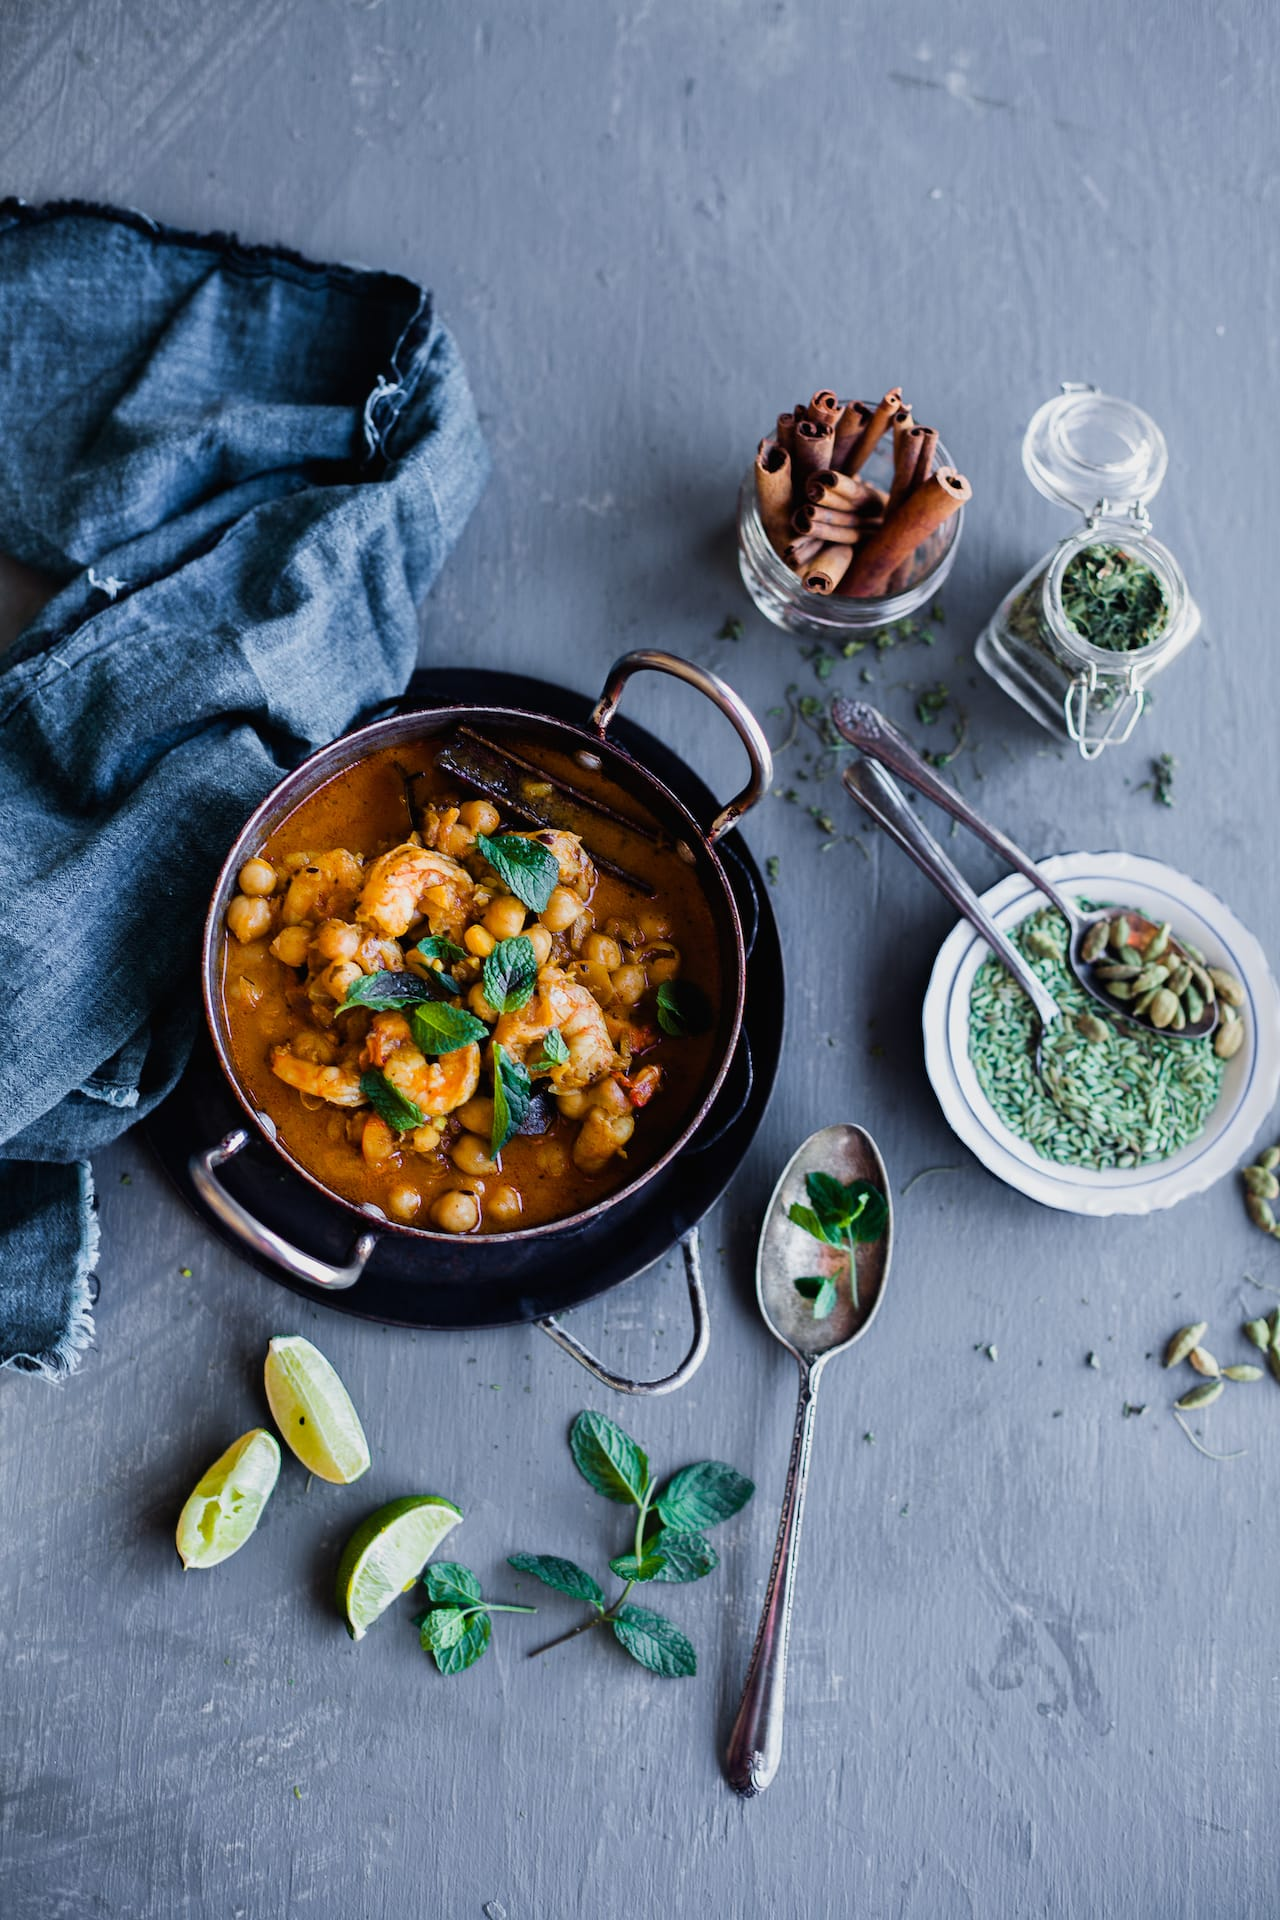 Chickpea Shrimp In Makhani Sauce | Playful Cooking